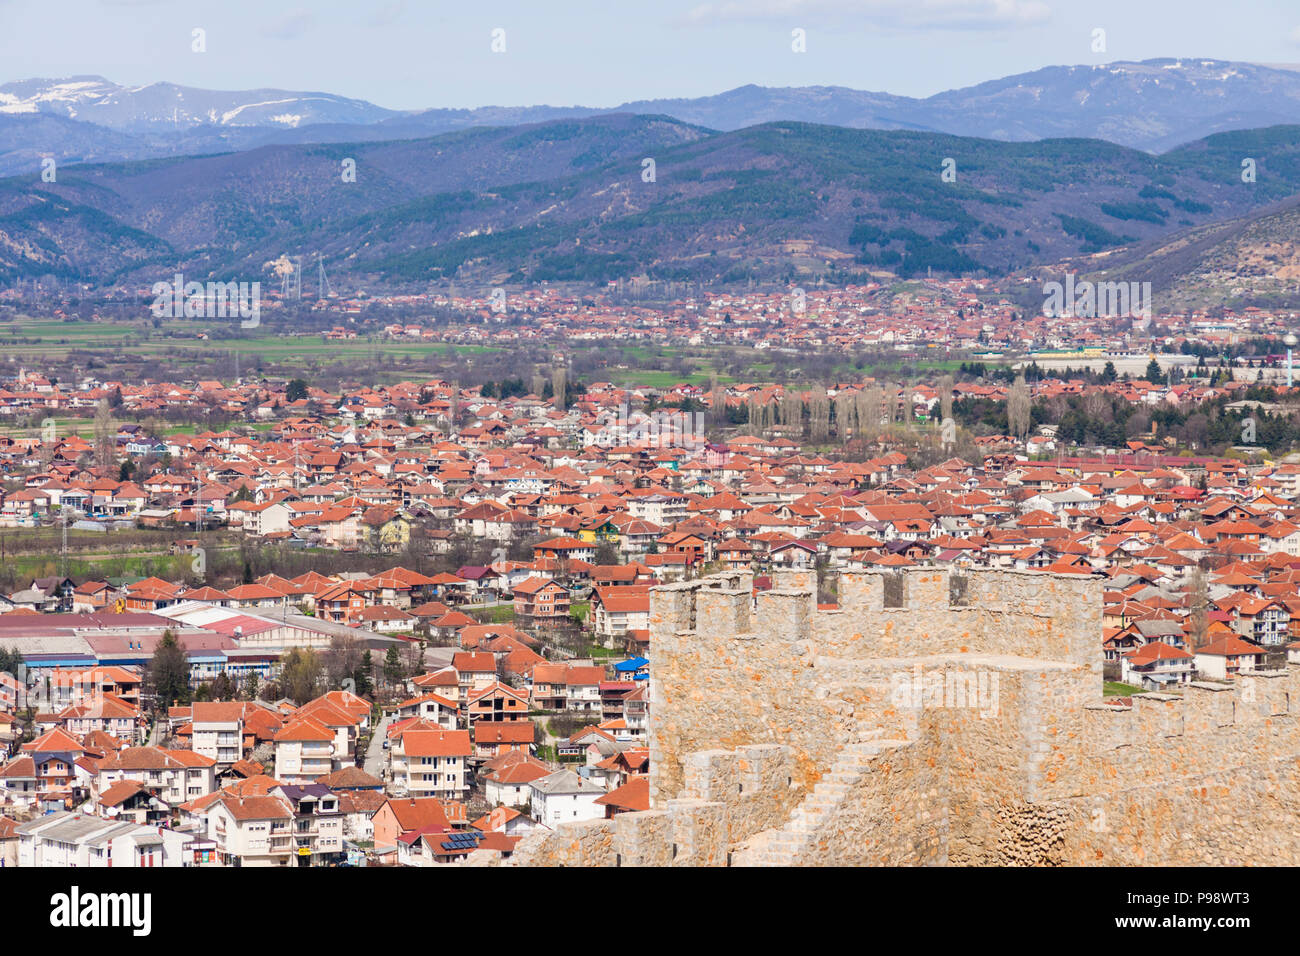 Ohrid, Republic of Macedonia : Samuel's Fortress and overview of the Unesco listed old town of Ohrid. Built on the site of an earlier 4th century BC f Stock Photo